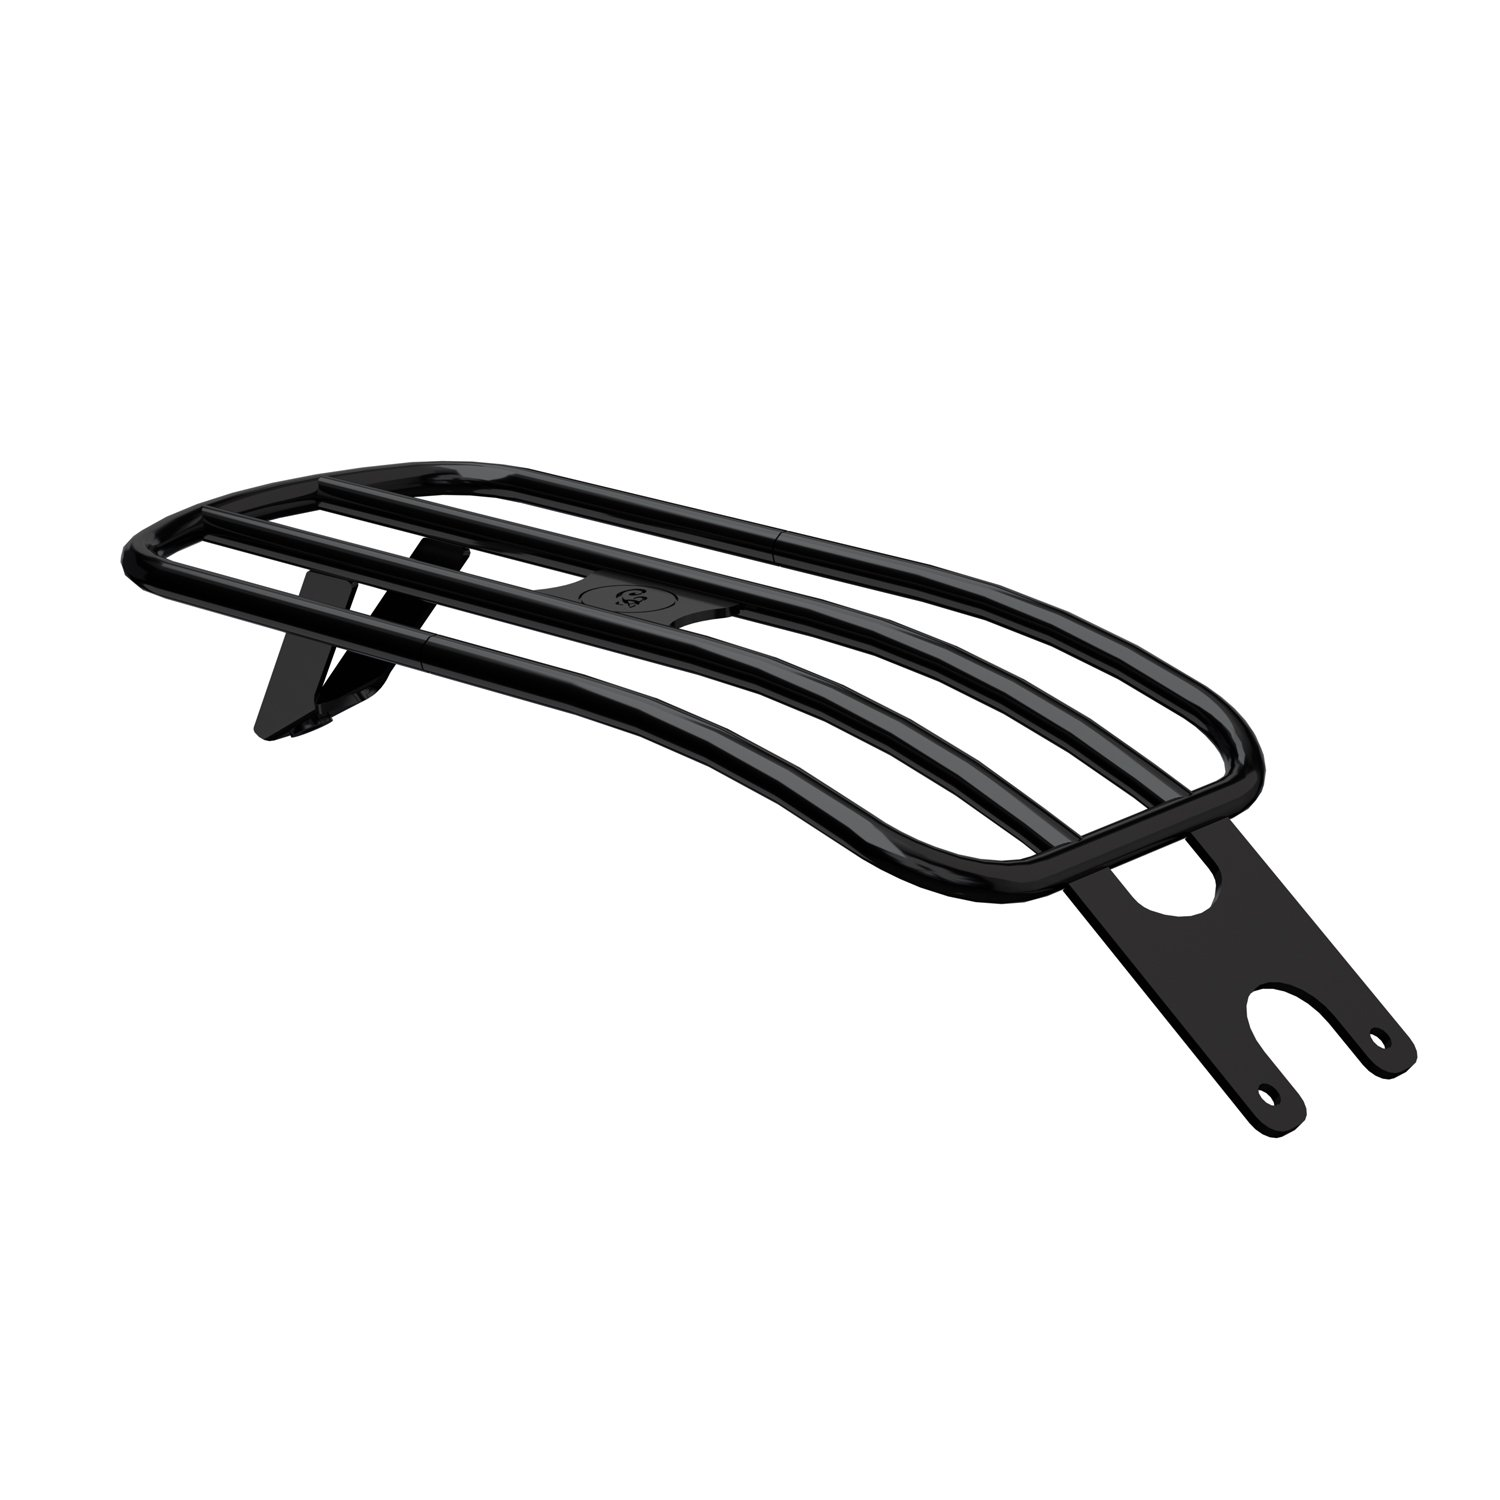 Solo Luggage Rack – Thunder Black